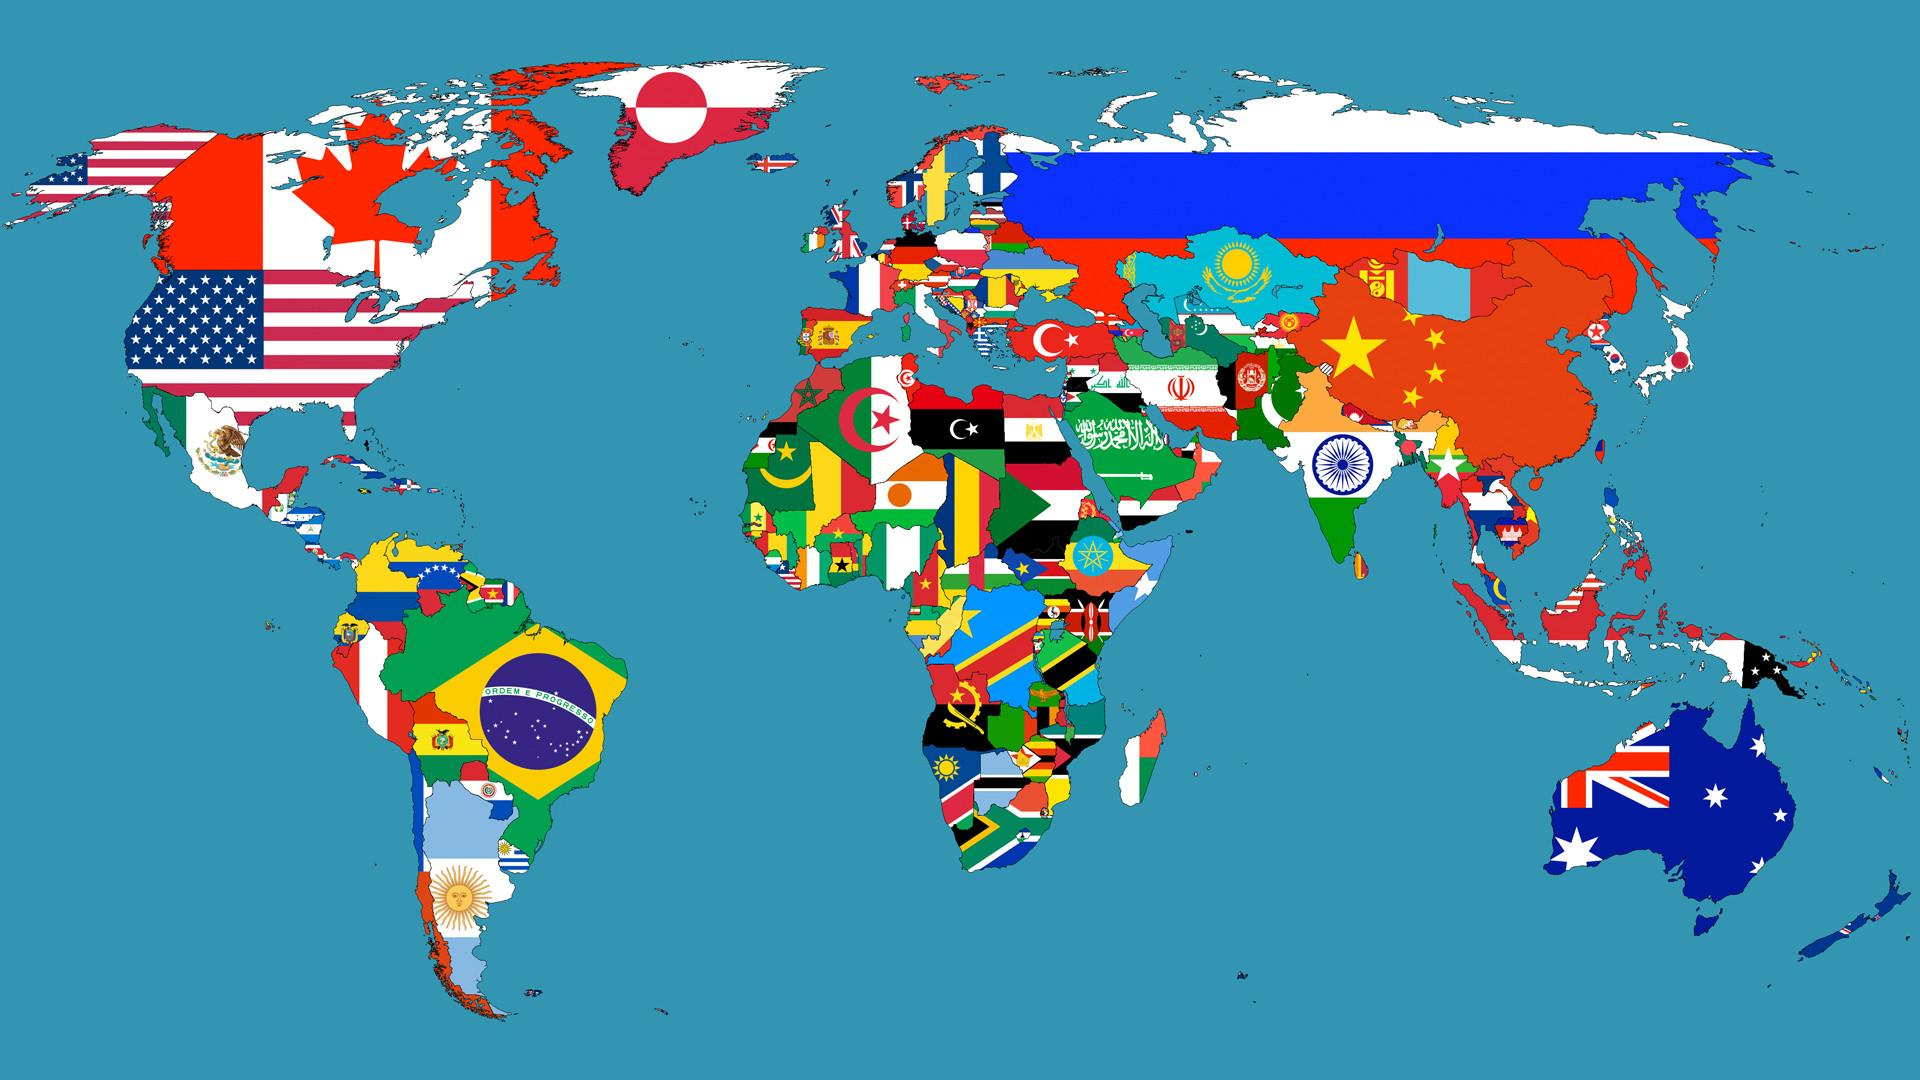 Maps Of The World Countries With Names Images World Maps Africa - World map countries